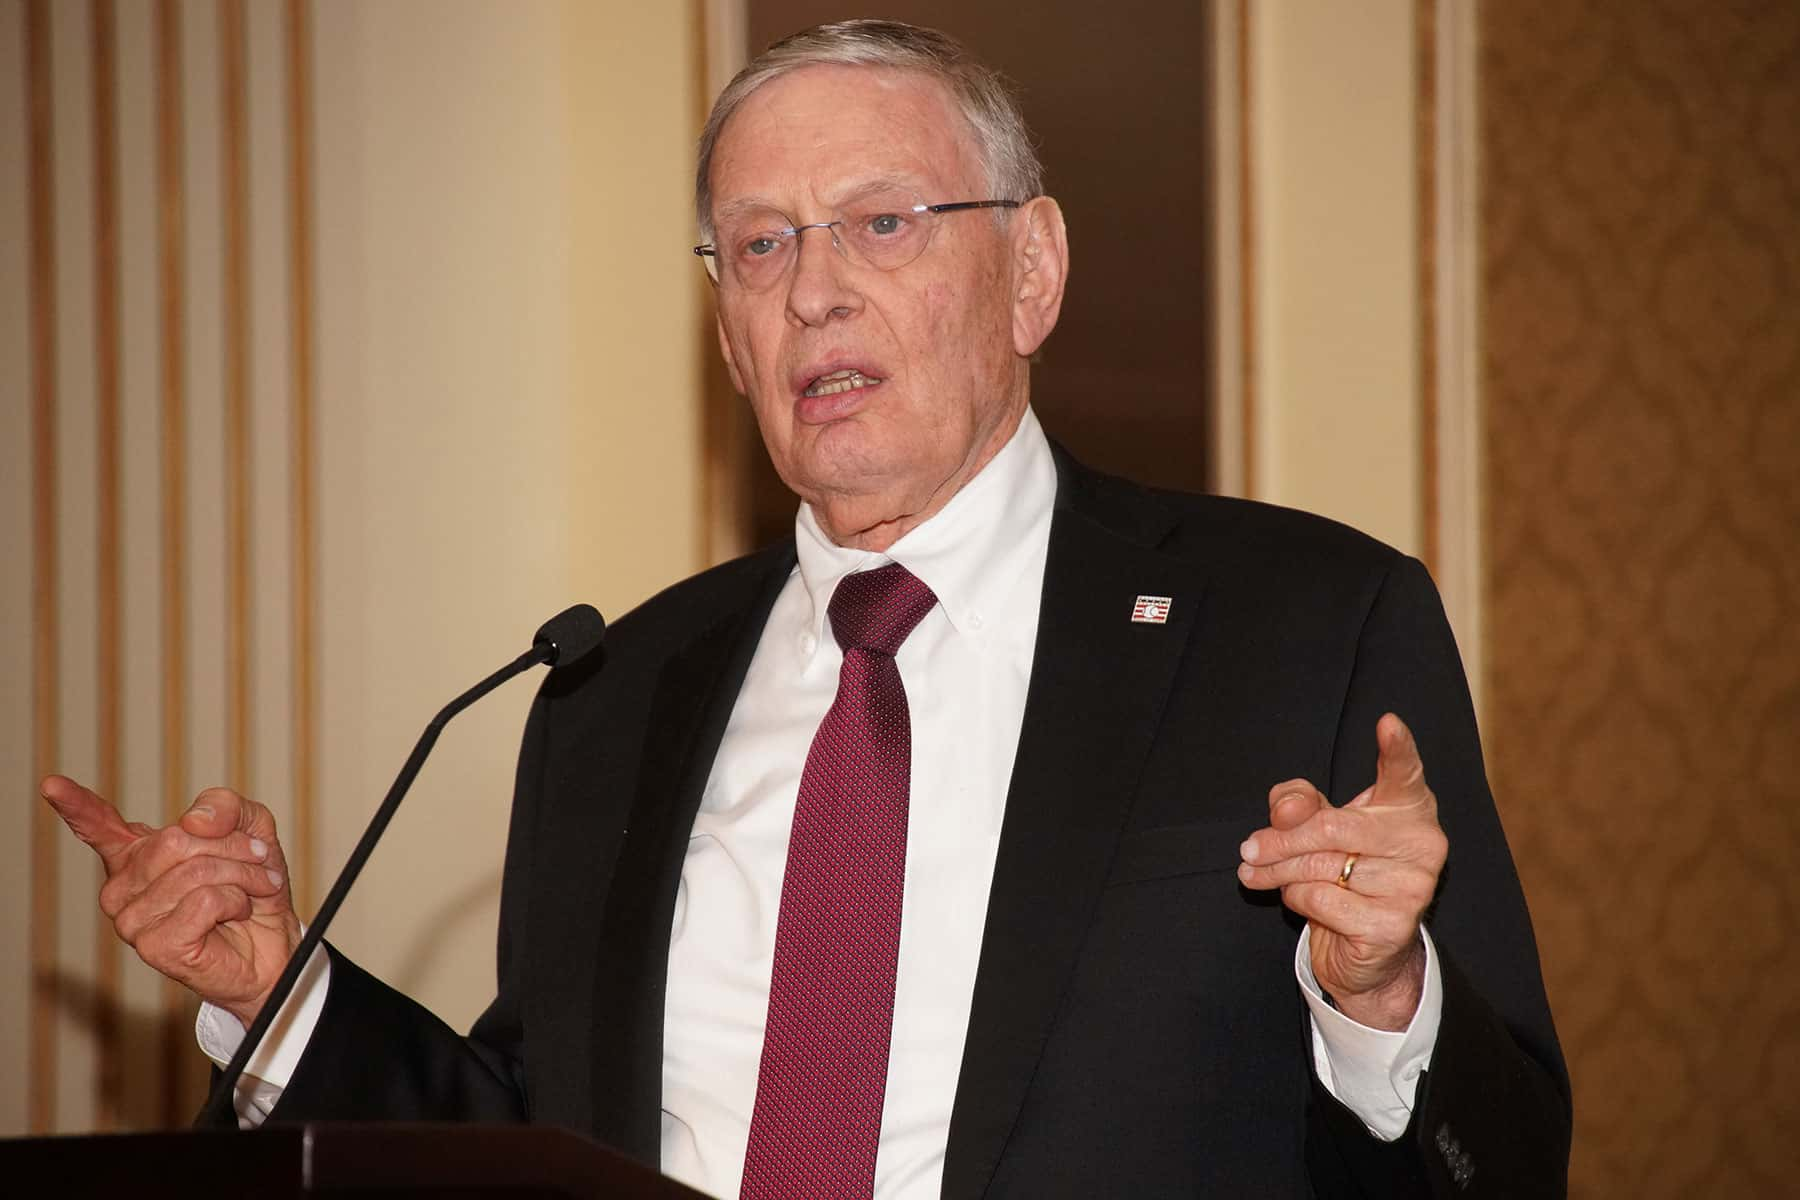 bud selig shares his love for history and baseball at mchs awards